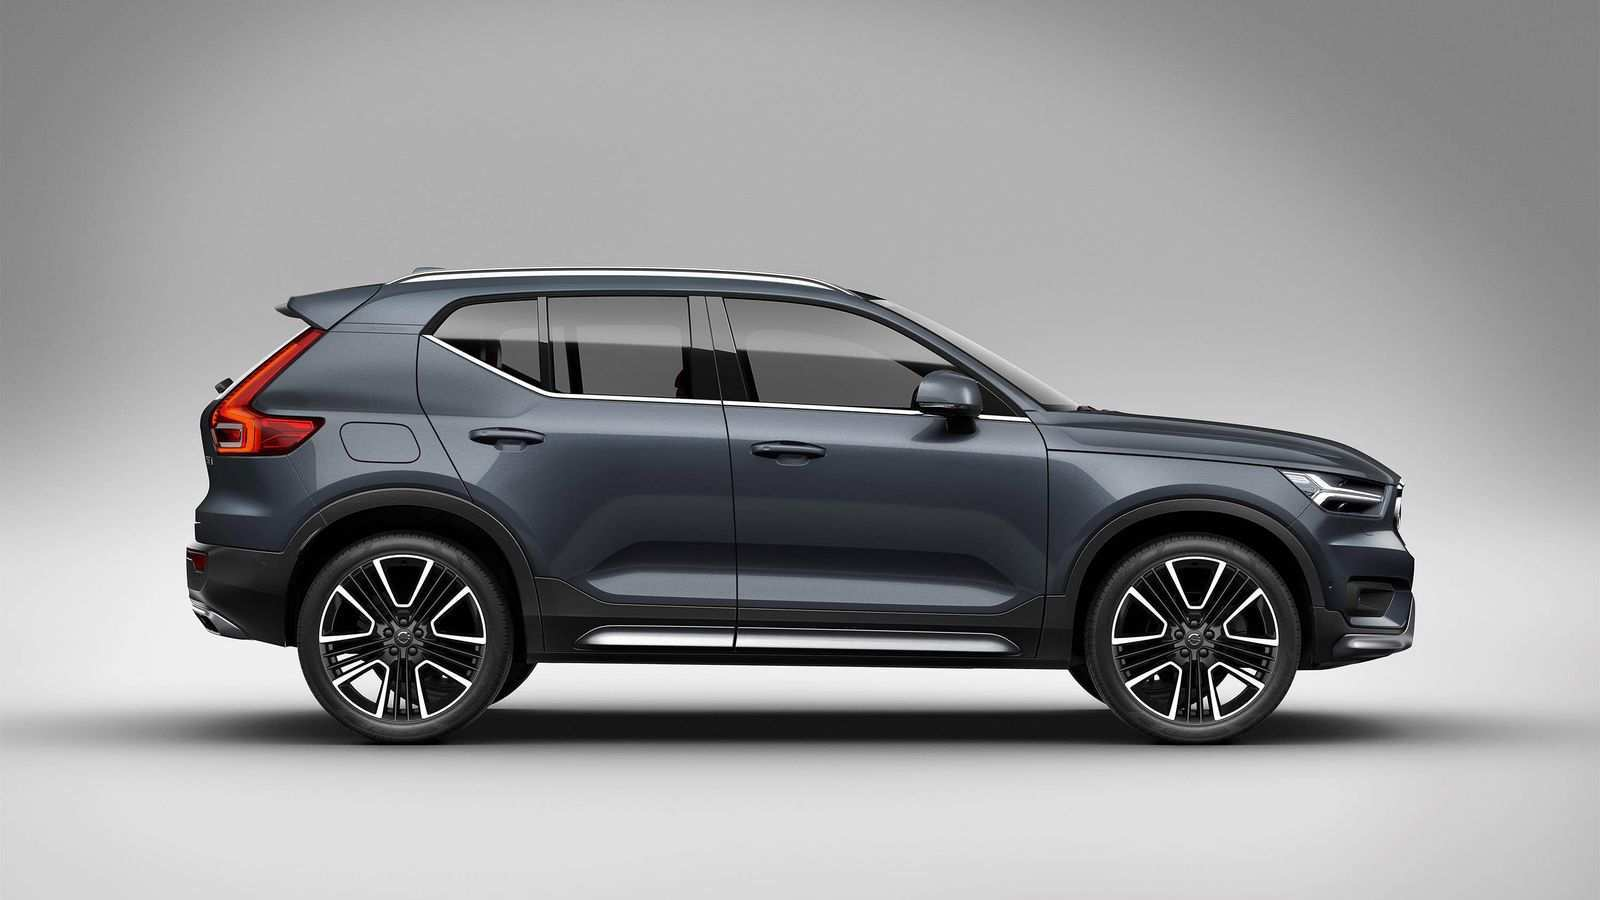 94 The Best Volvo Xc40 Inscription 2020 Exterior And Interior